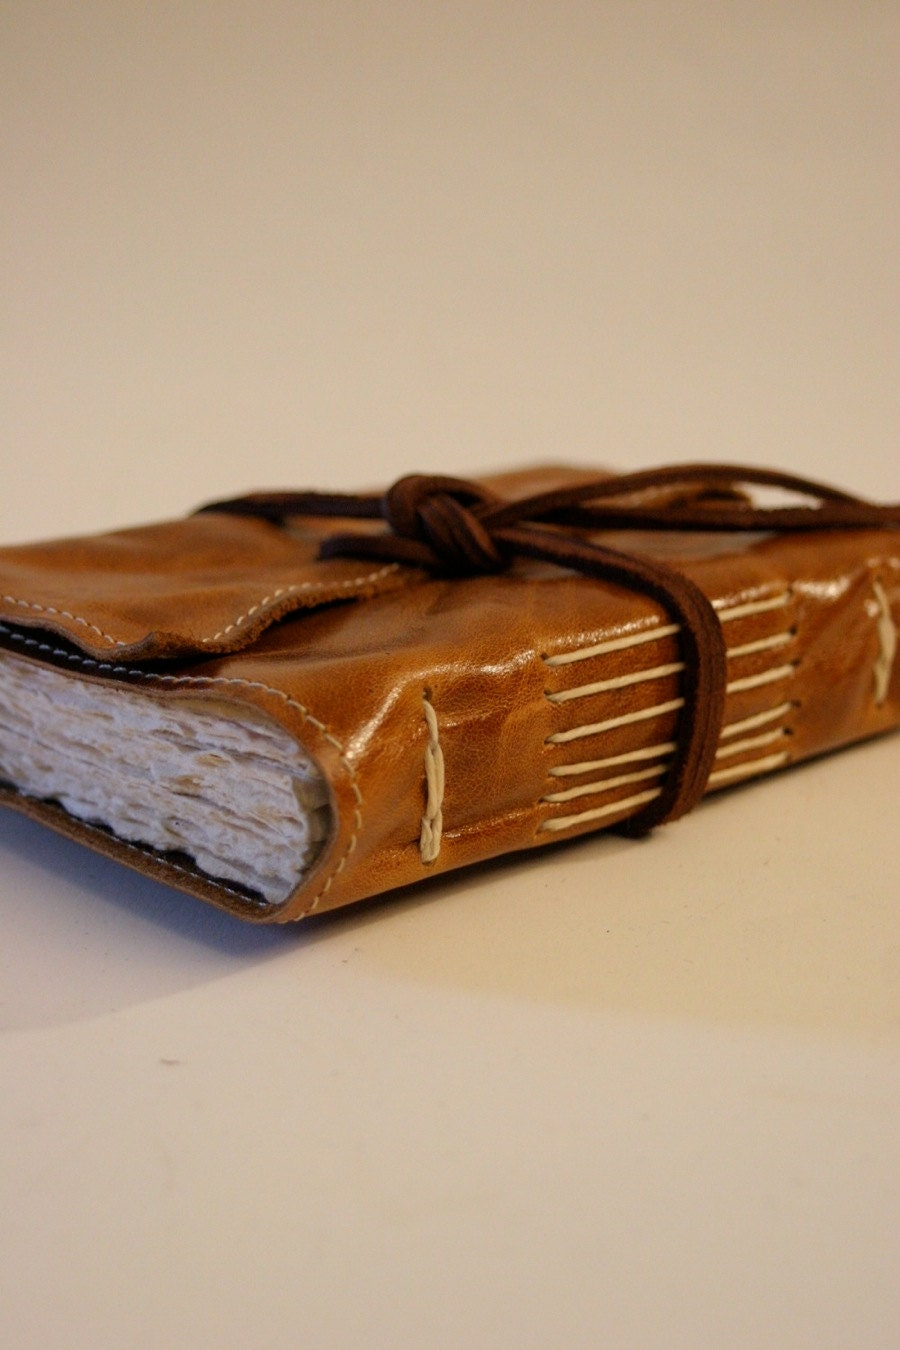 Light Brown Old Fashion Leather Journal by Binding by bindingbee